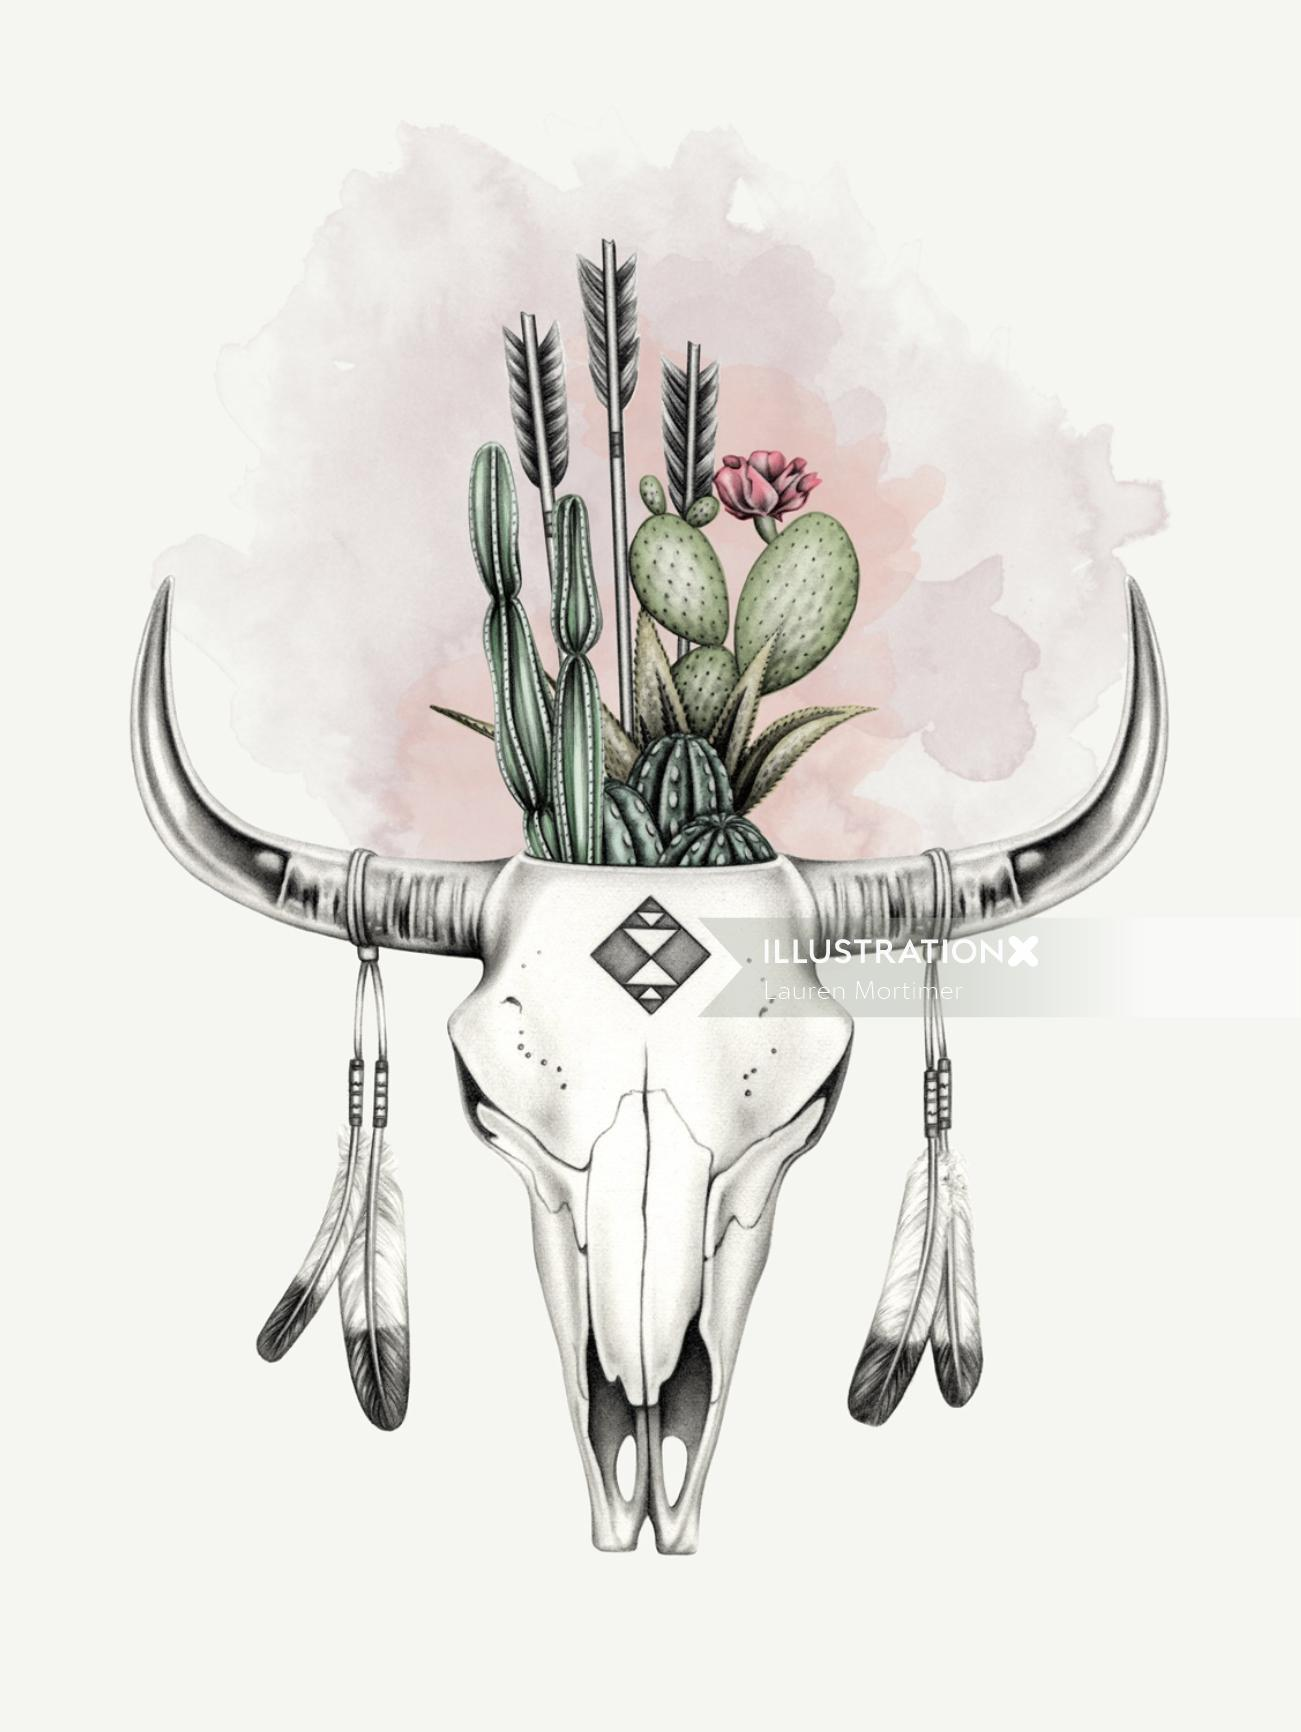 Pencil drawing of cow skull with cactus